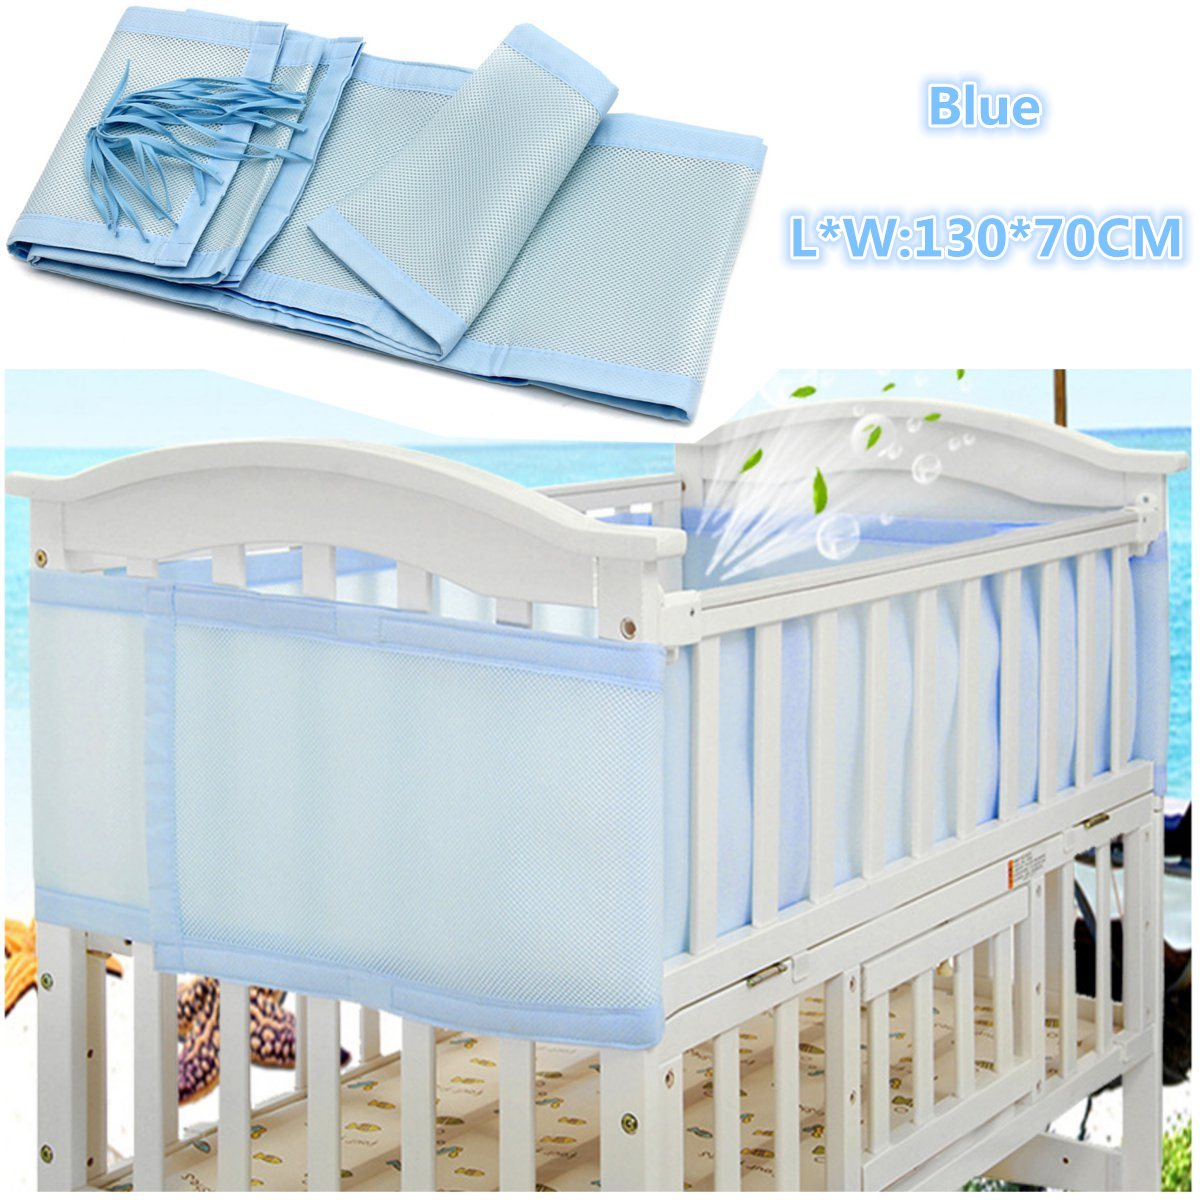 Crib protector for babies - Breathable Blue Infant Baby Air Pad Cot Bumper Mesh Protection Cover Infantile Bedding Baby Safety Baby